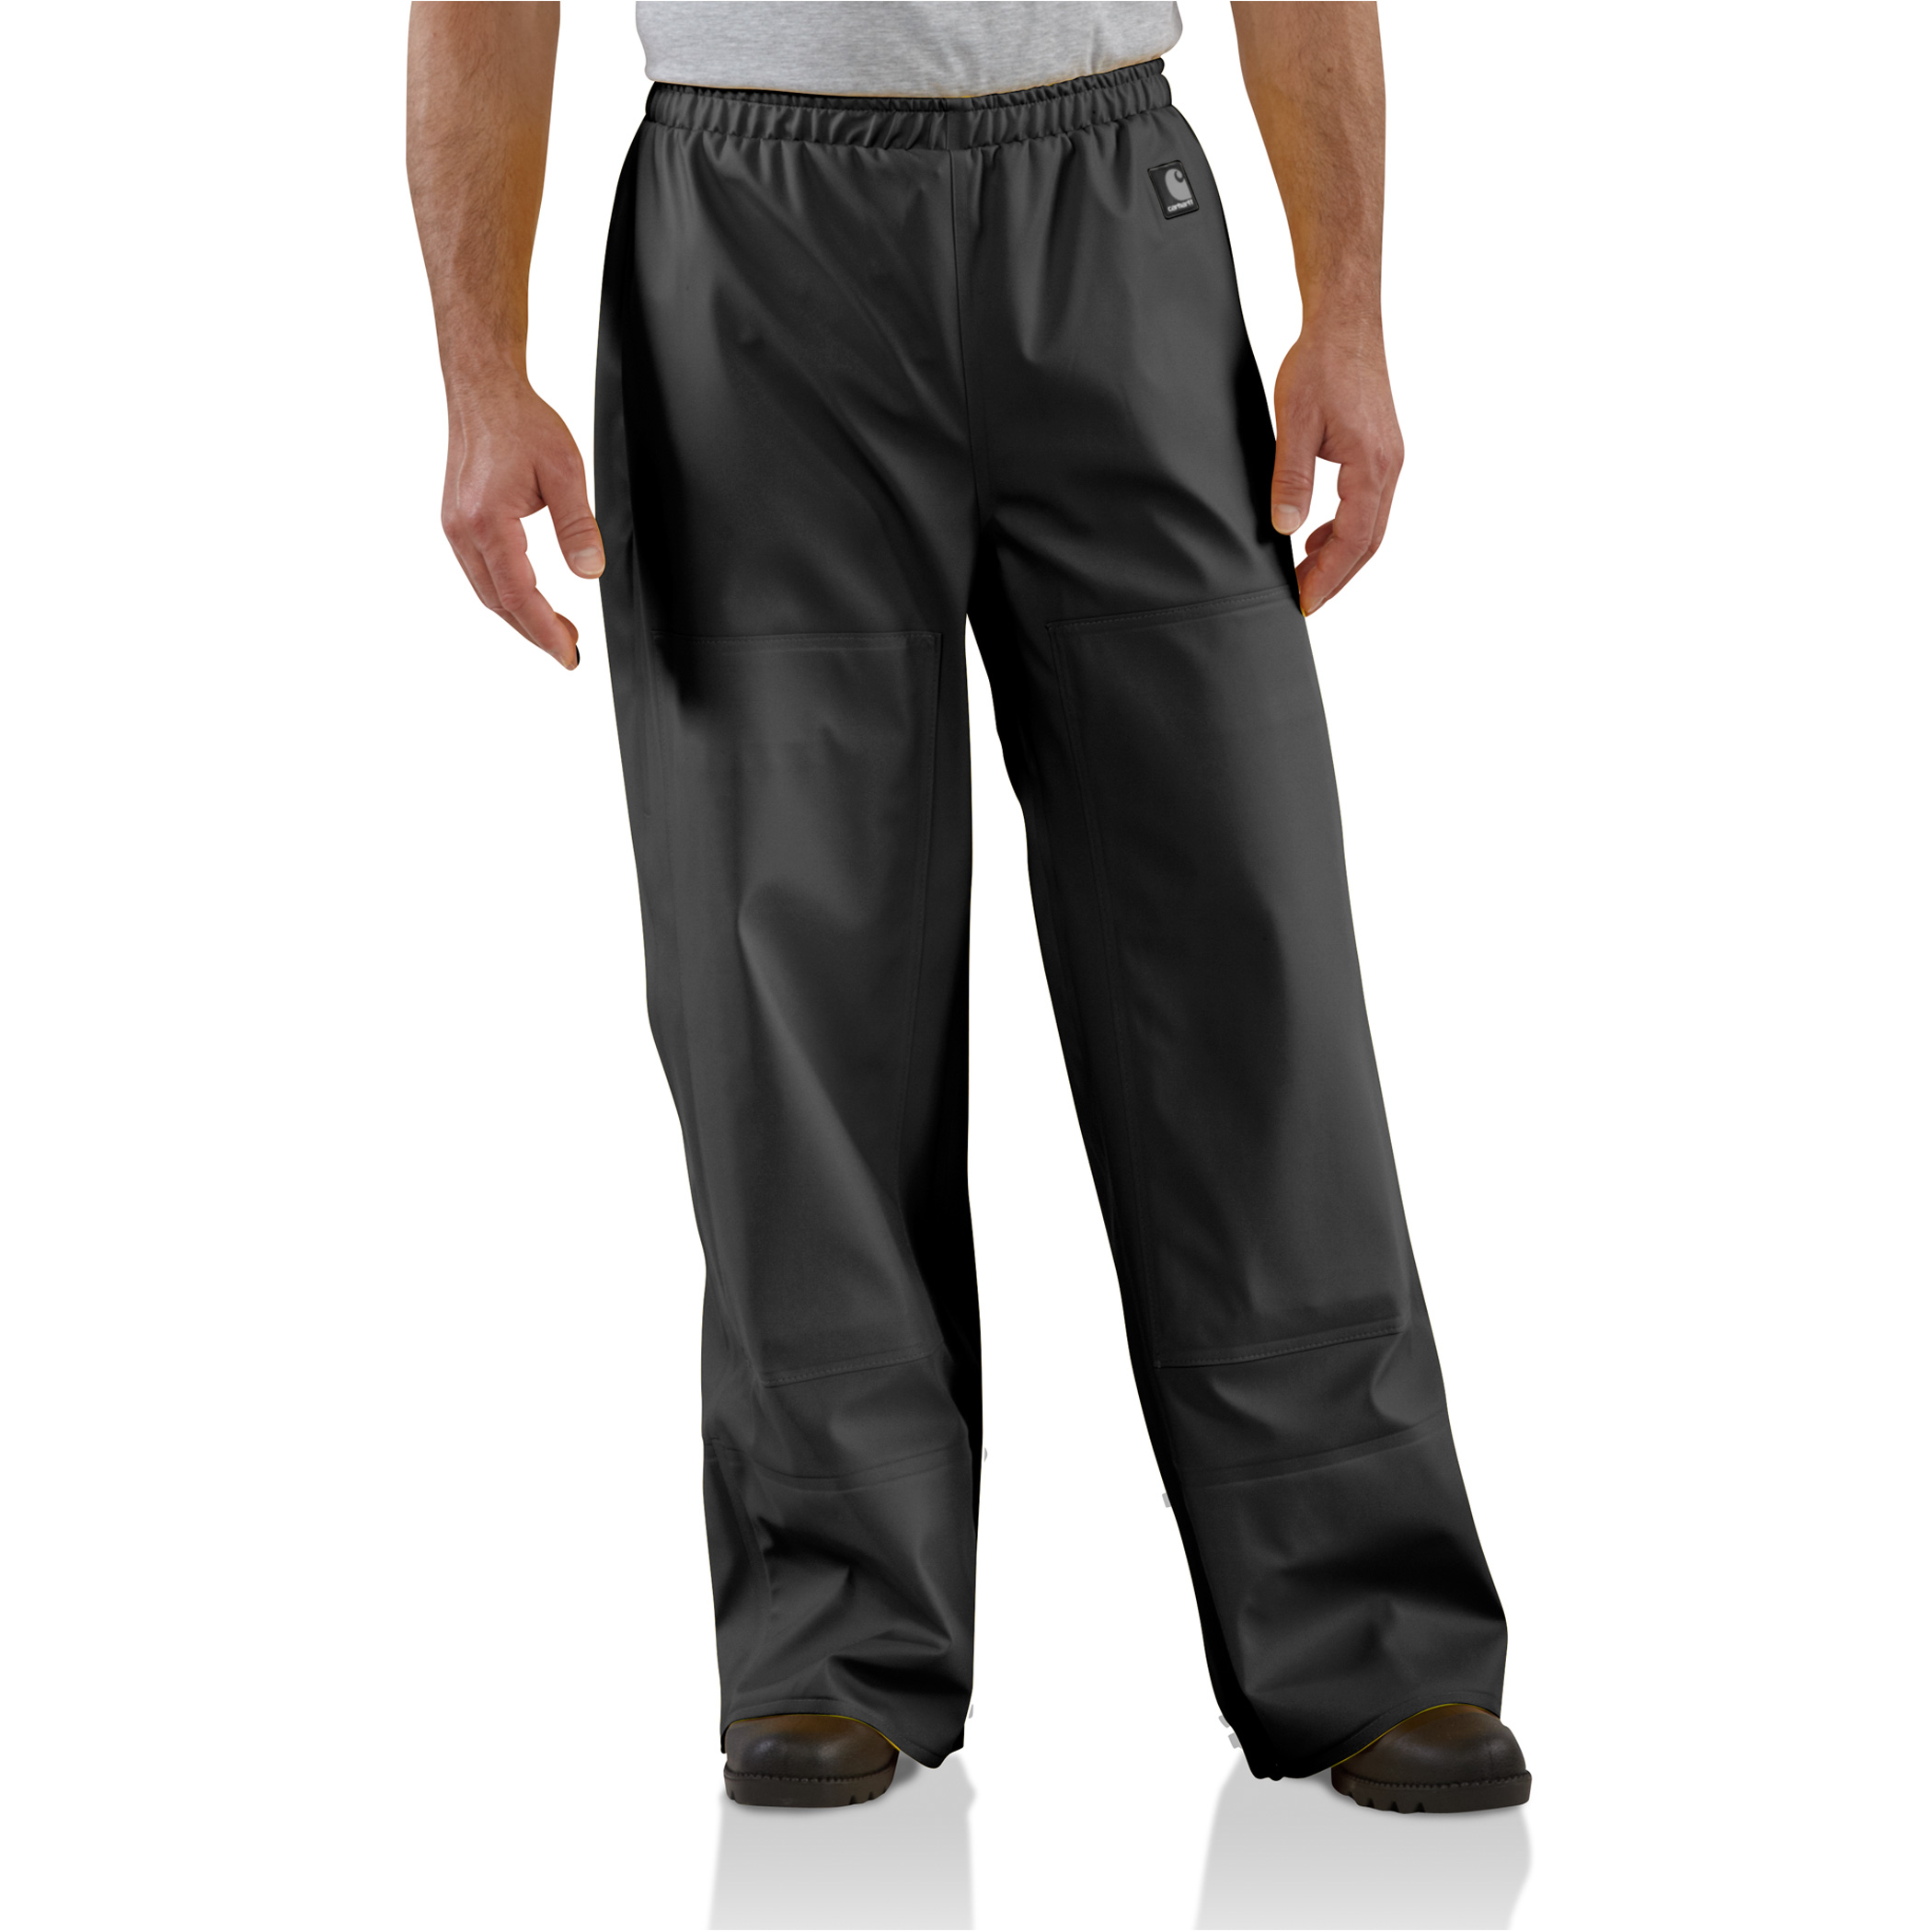 Carhartt Work-Flex Pant - Black - B204